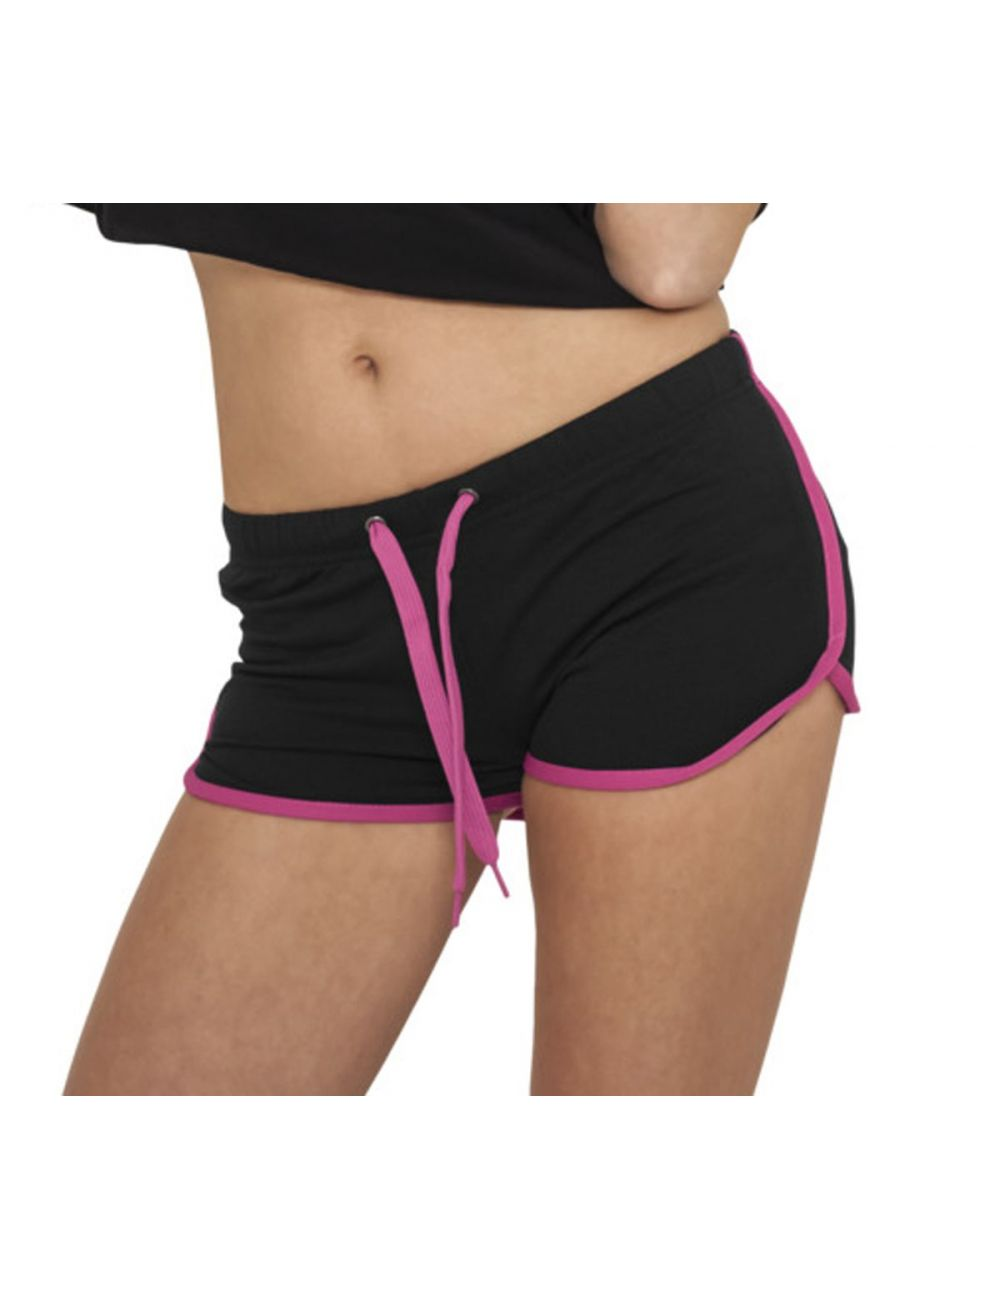 Mini short Urban Classics Noir Rose Fuchsia French Terry Hotpant